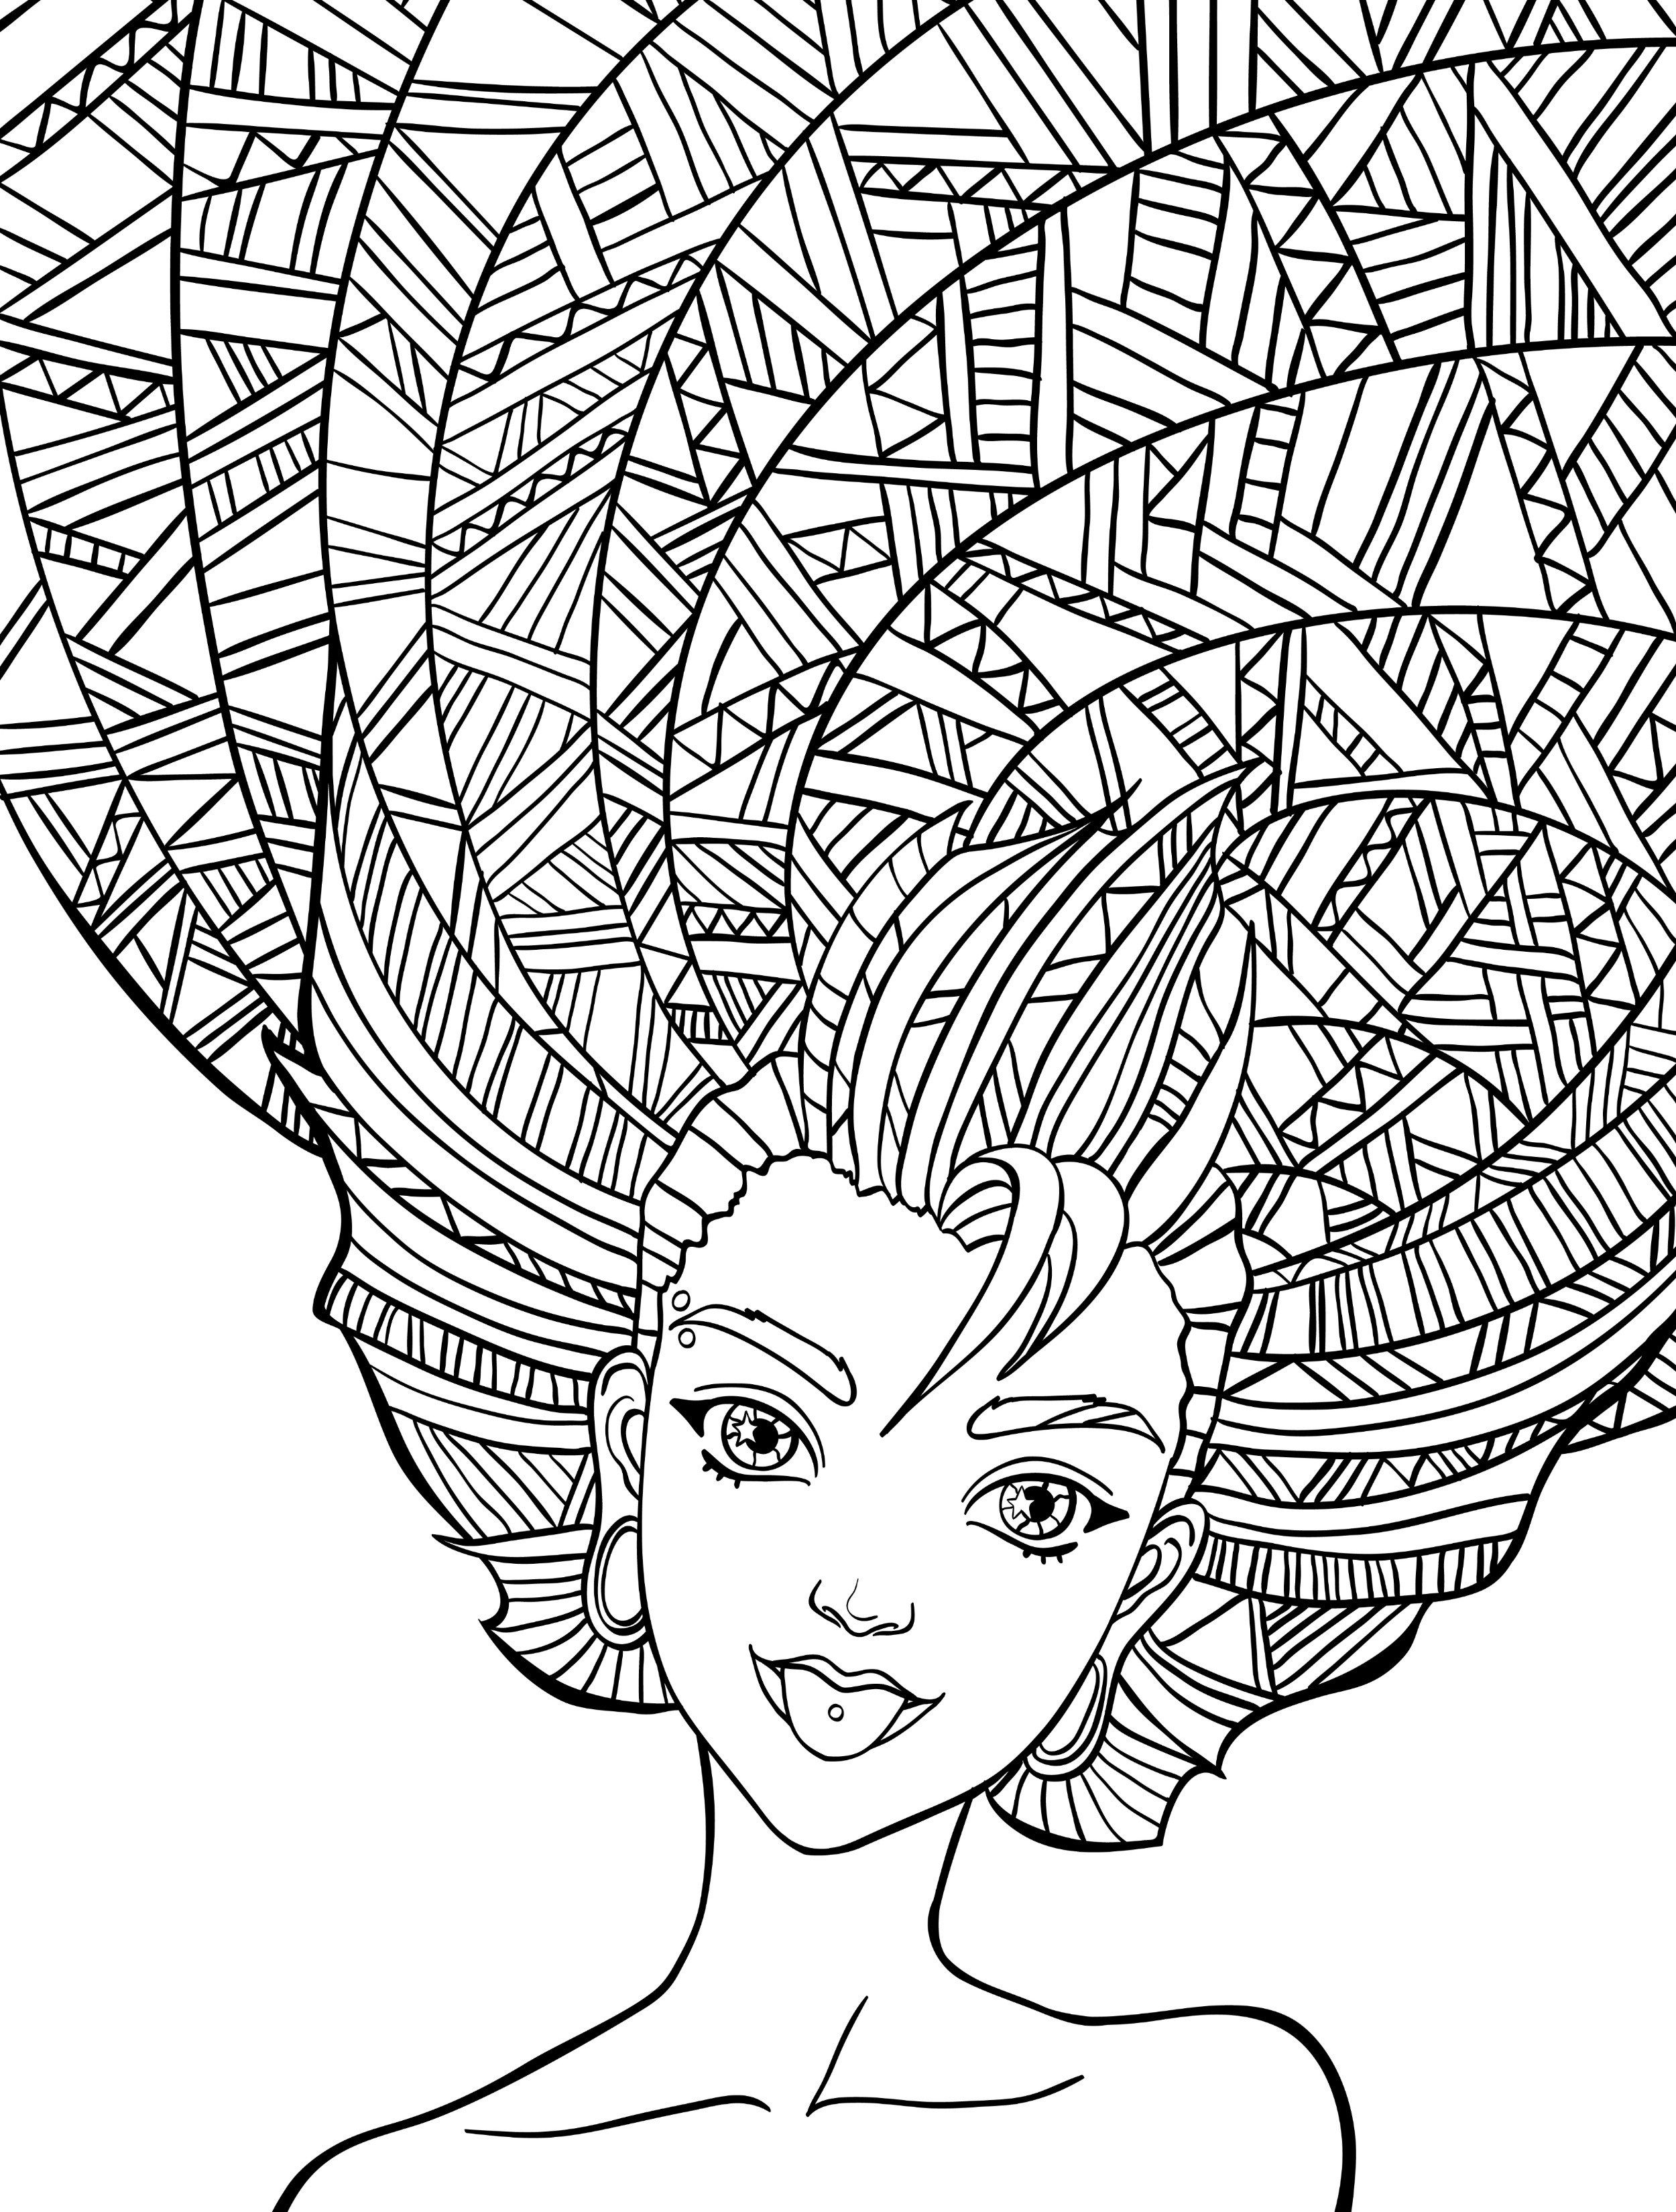 funny adult coloring pages free to print | adult coloring ... | free online coloring pages for adults funny